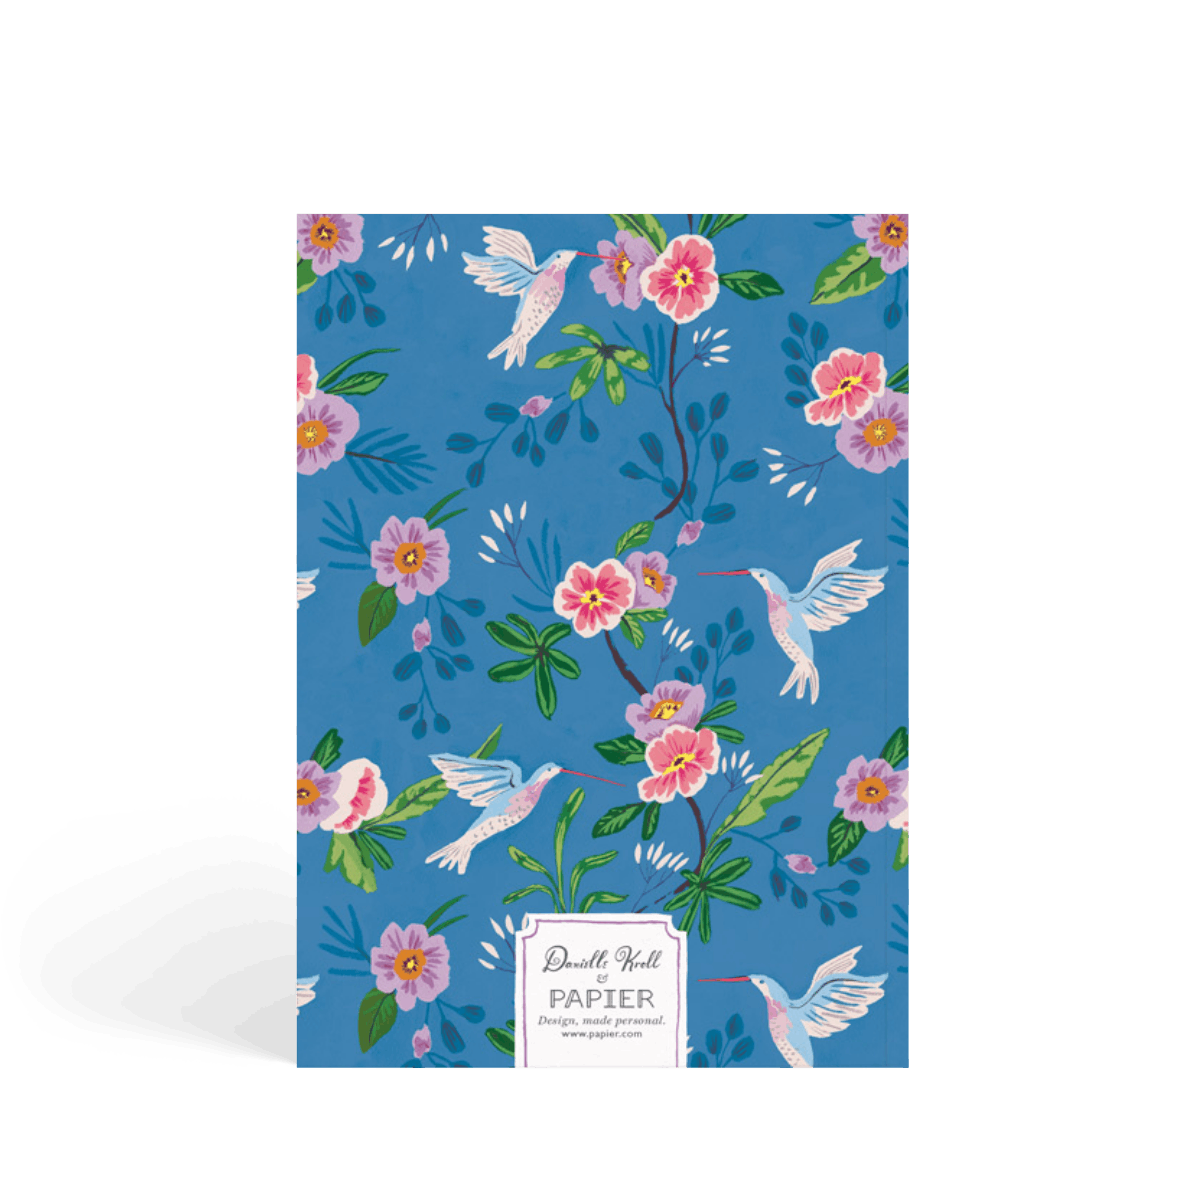 Https%3a%2f%2fwww.papier.com%2fproduct image%2f28304%2f5%2fhummingbirds 7104 arriere 1505835296.png?ixlib=rb 1.1